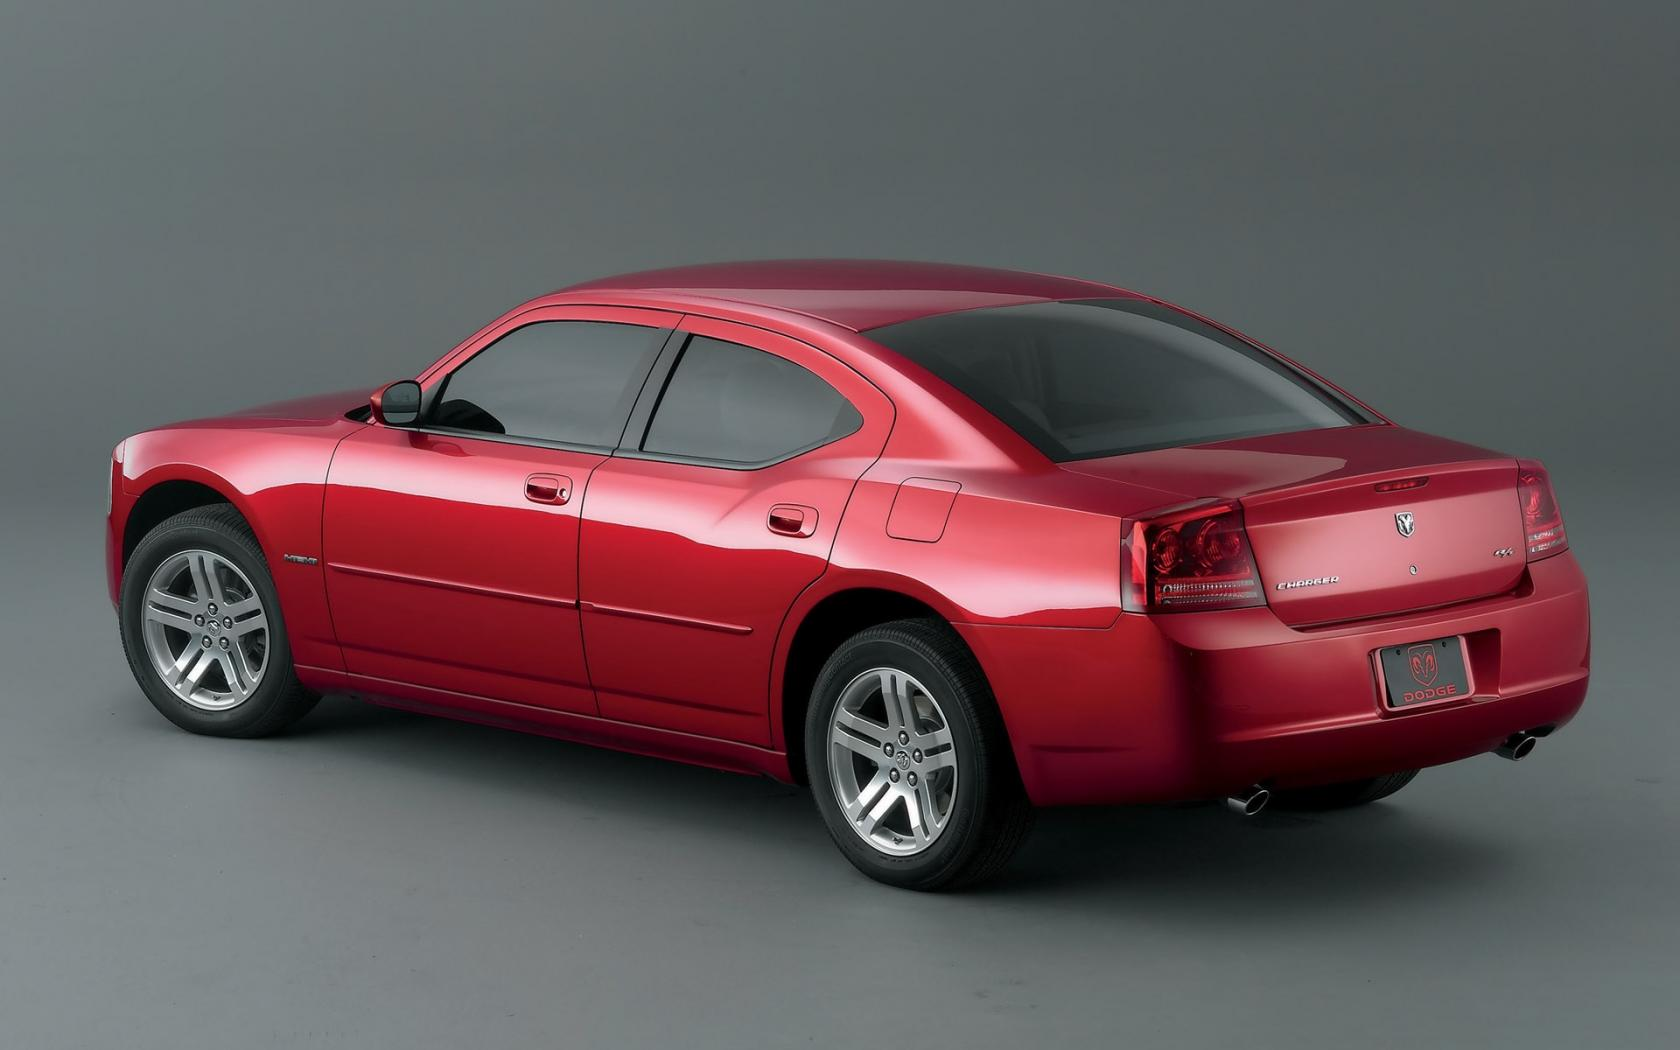 2006 Dodge Charger Rt Racer 1680x1050